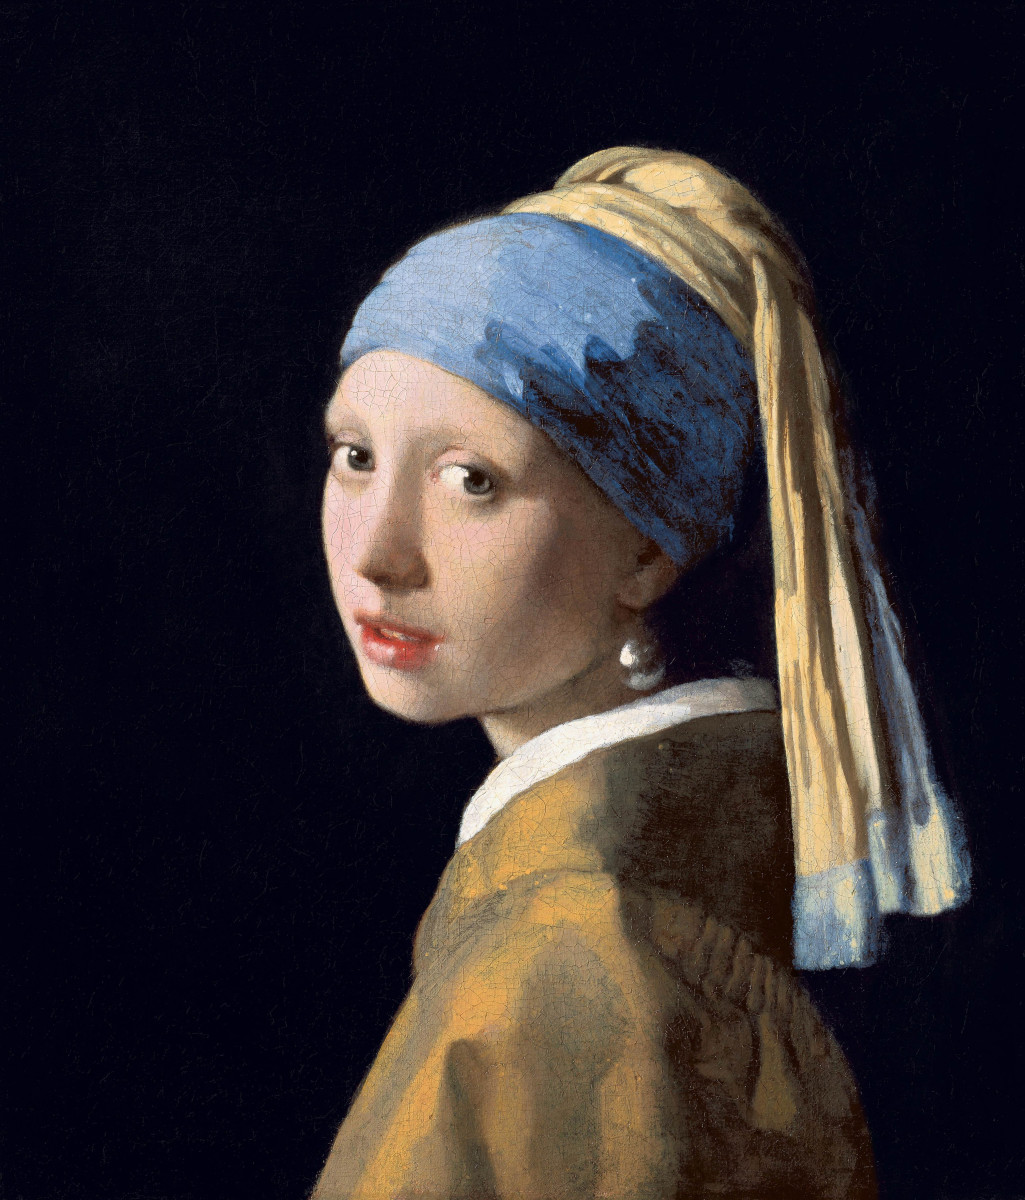 """Girl with a Pearl Earring"" Johannes Vermeer, 1665; 46.5 x 40 cm, oil on canvas"